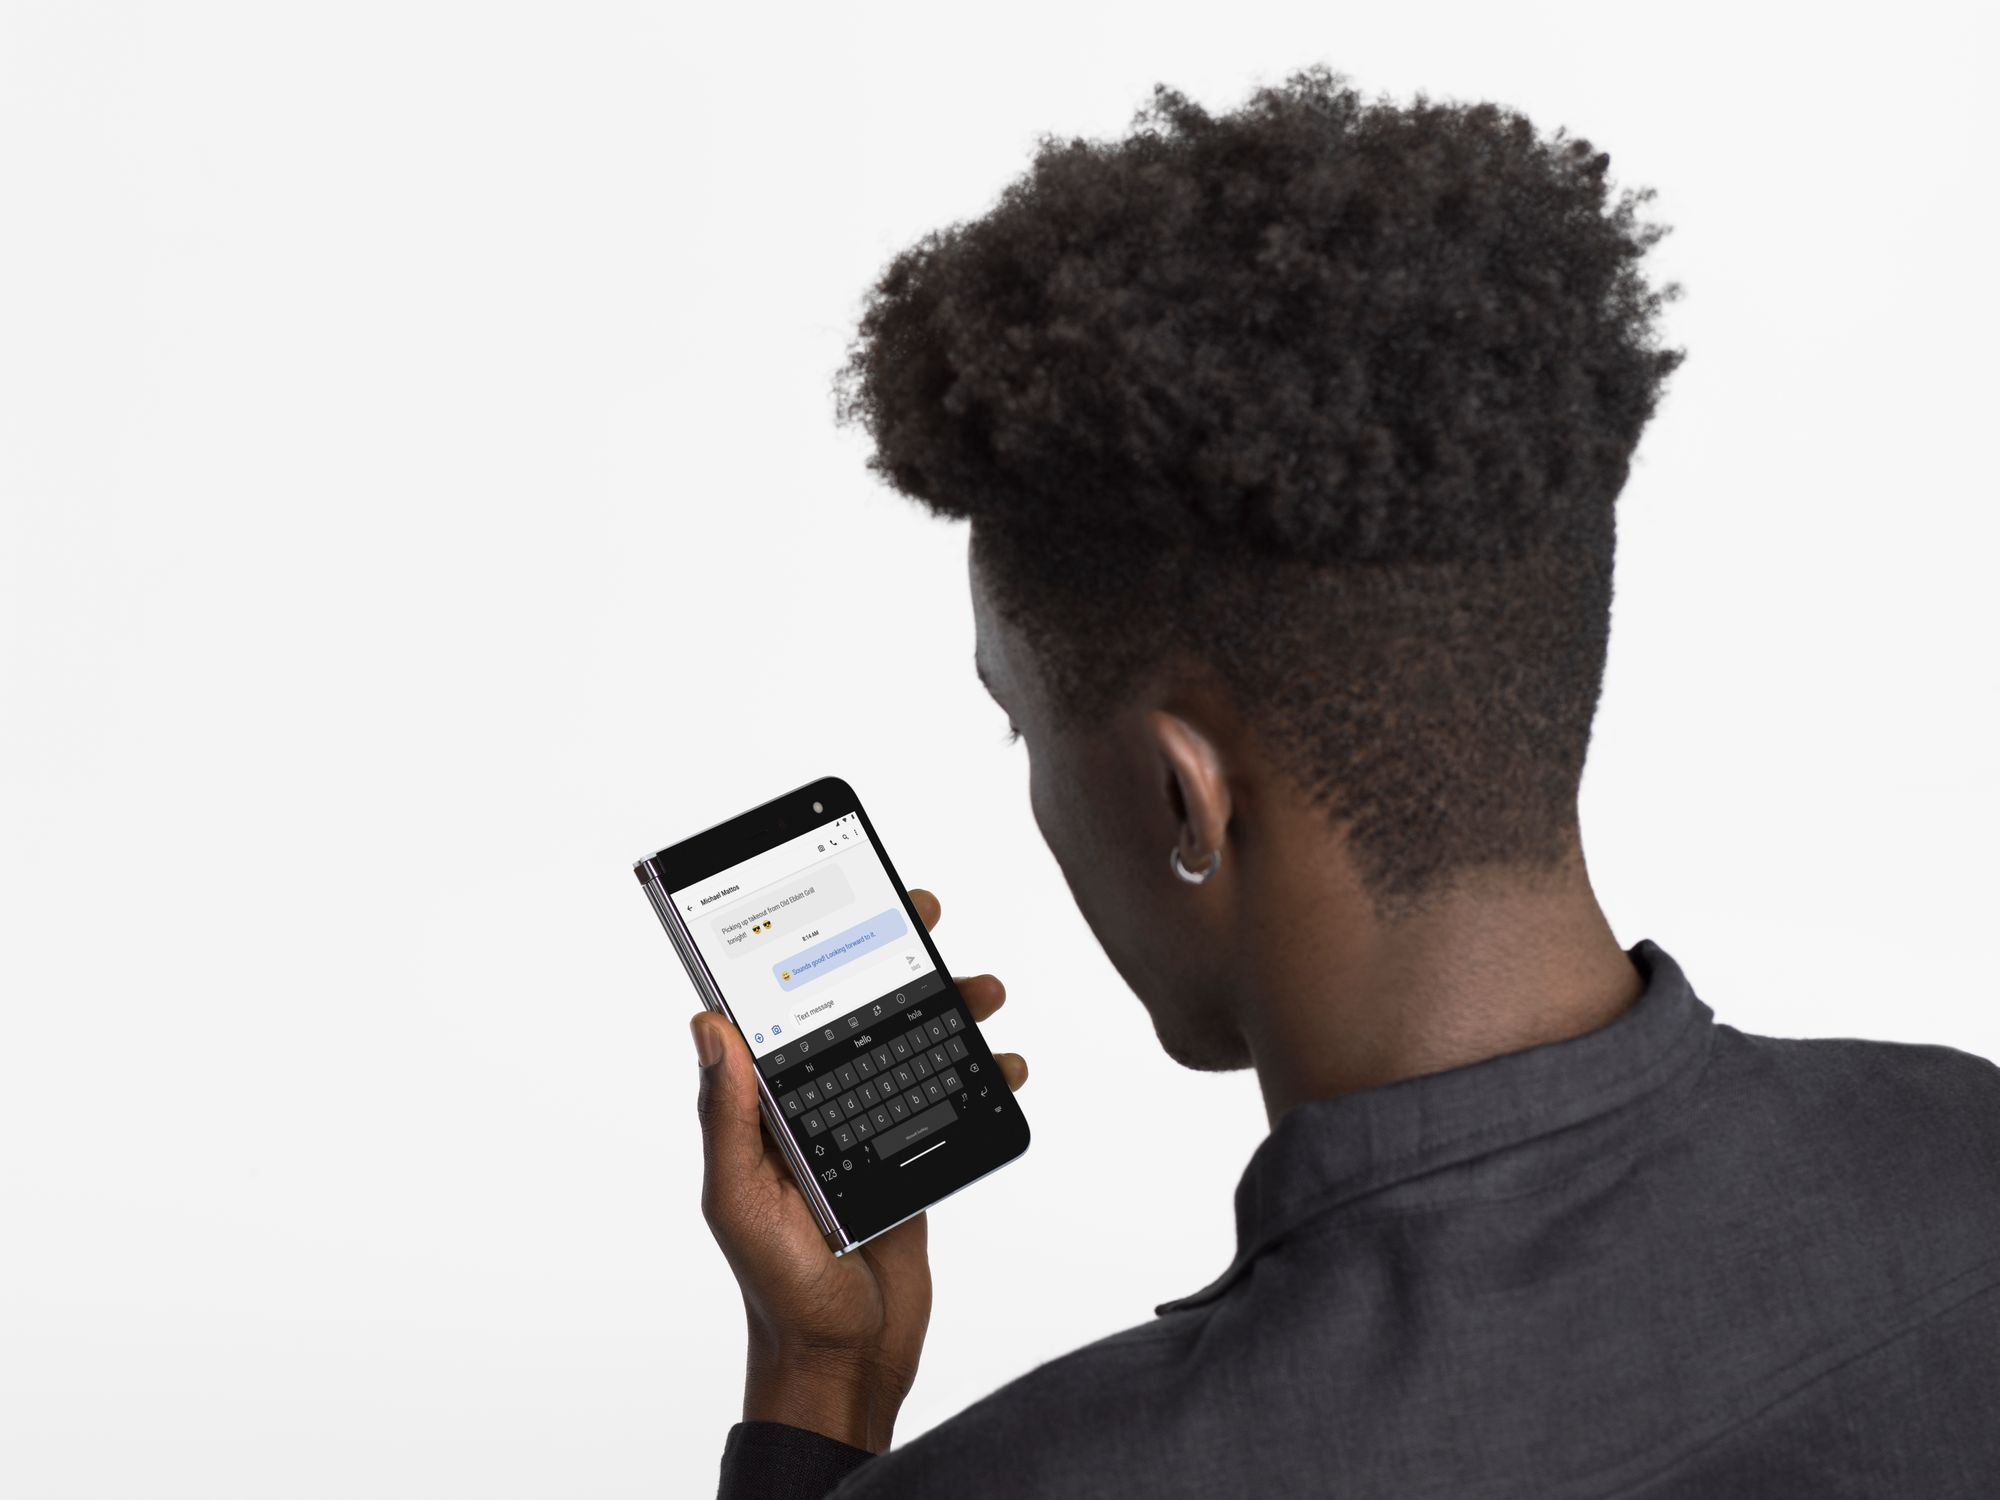 A man holds the Surface Duo in phone mode and looks at a screen where a message chat is open